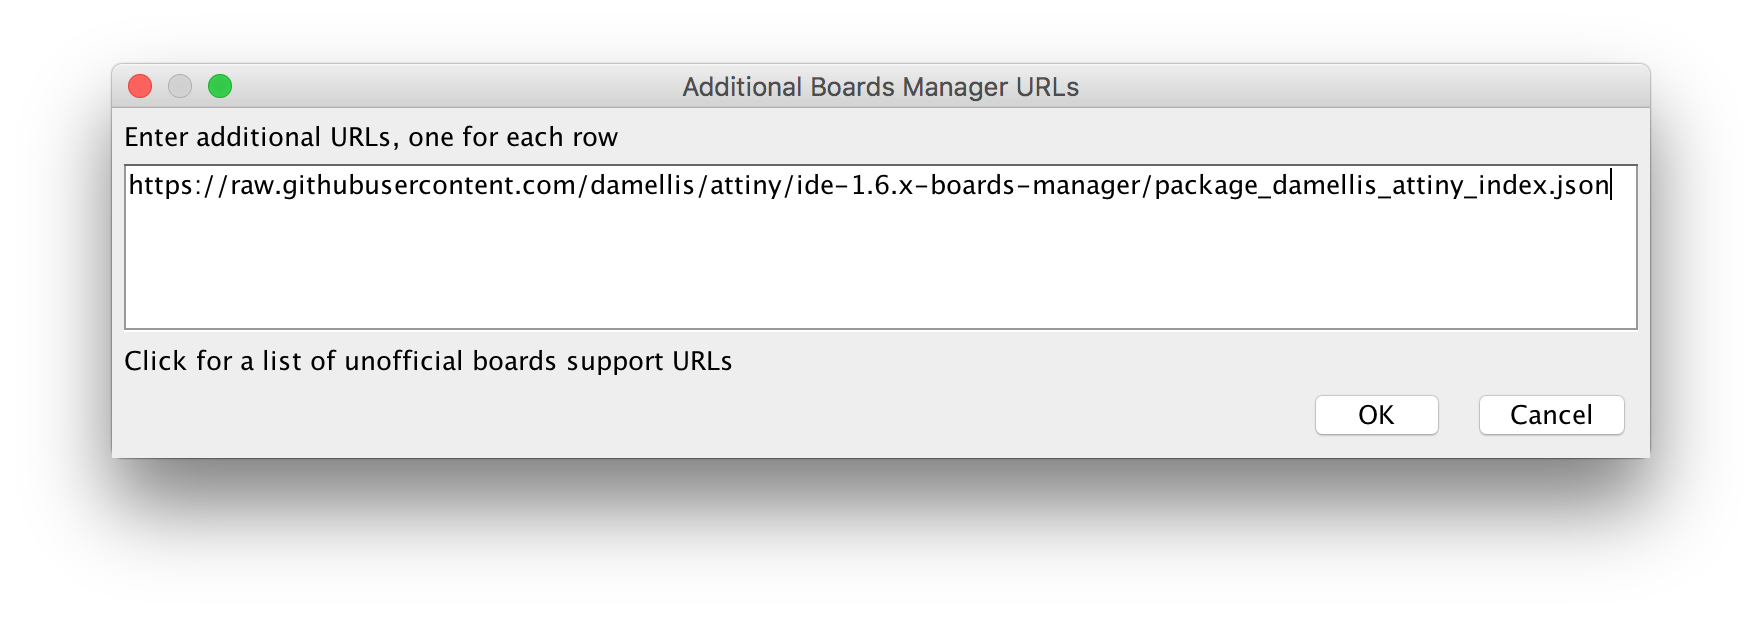 Enter the URL for the ATtiny Boards manager